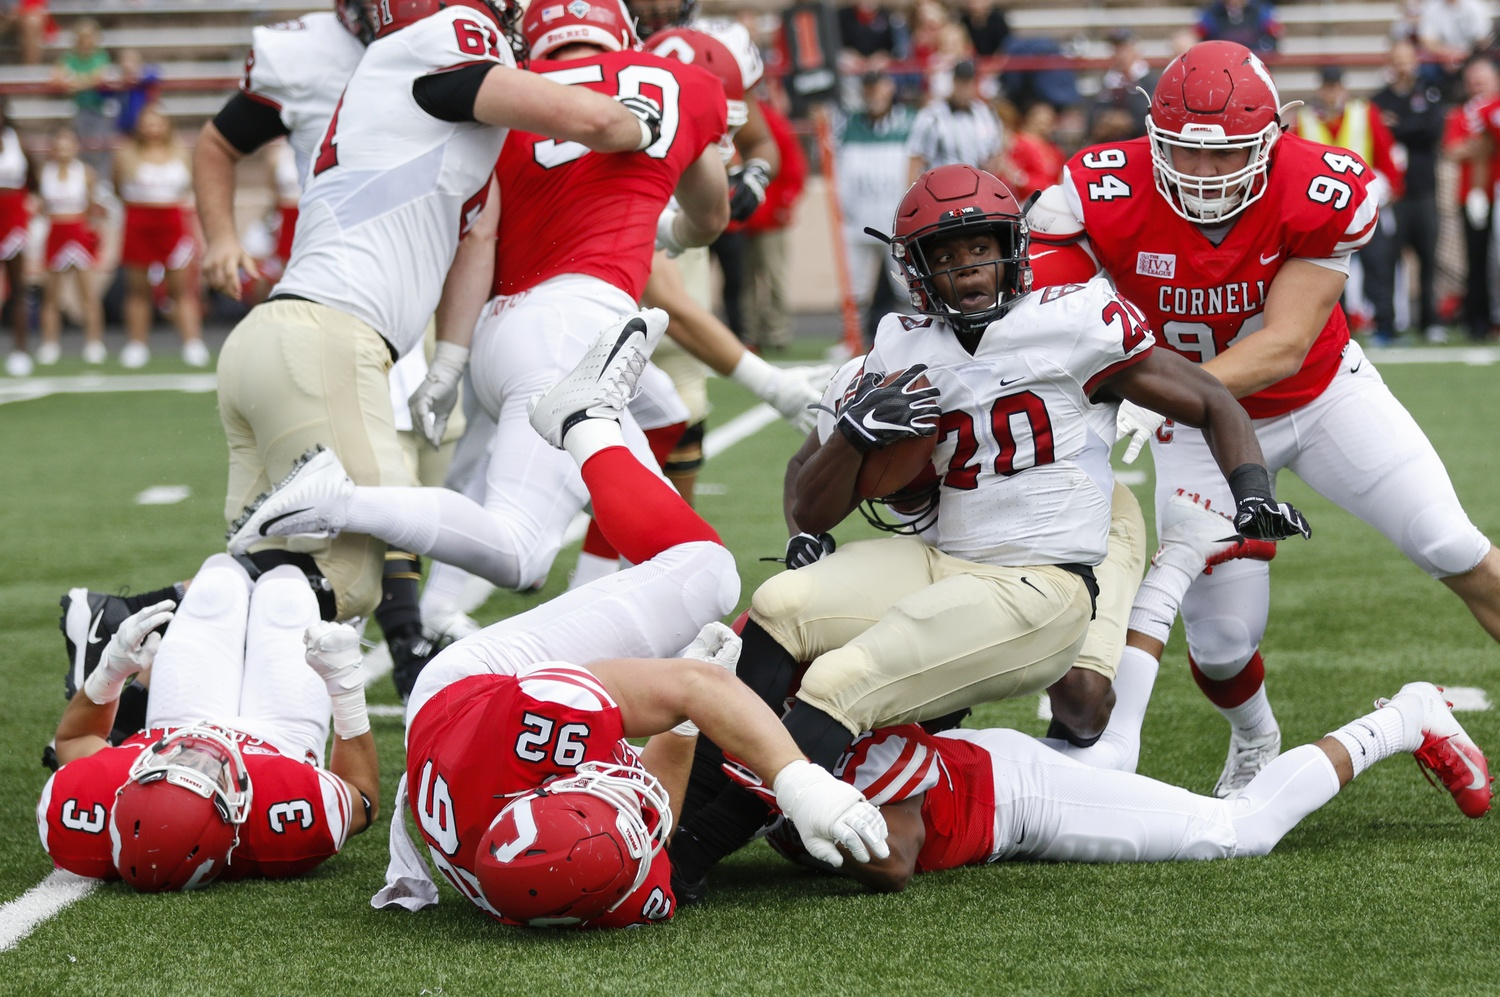 Aaron Shampklin paced the Harvard offense with a career-high 191 yards against Cornell.